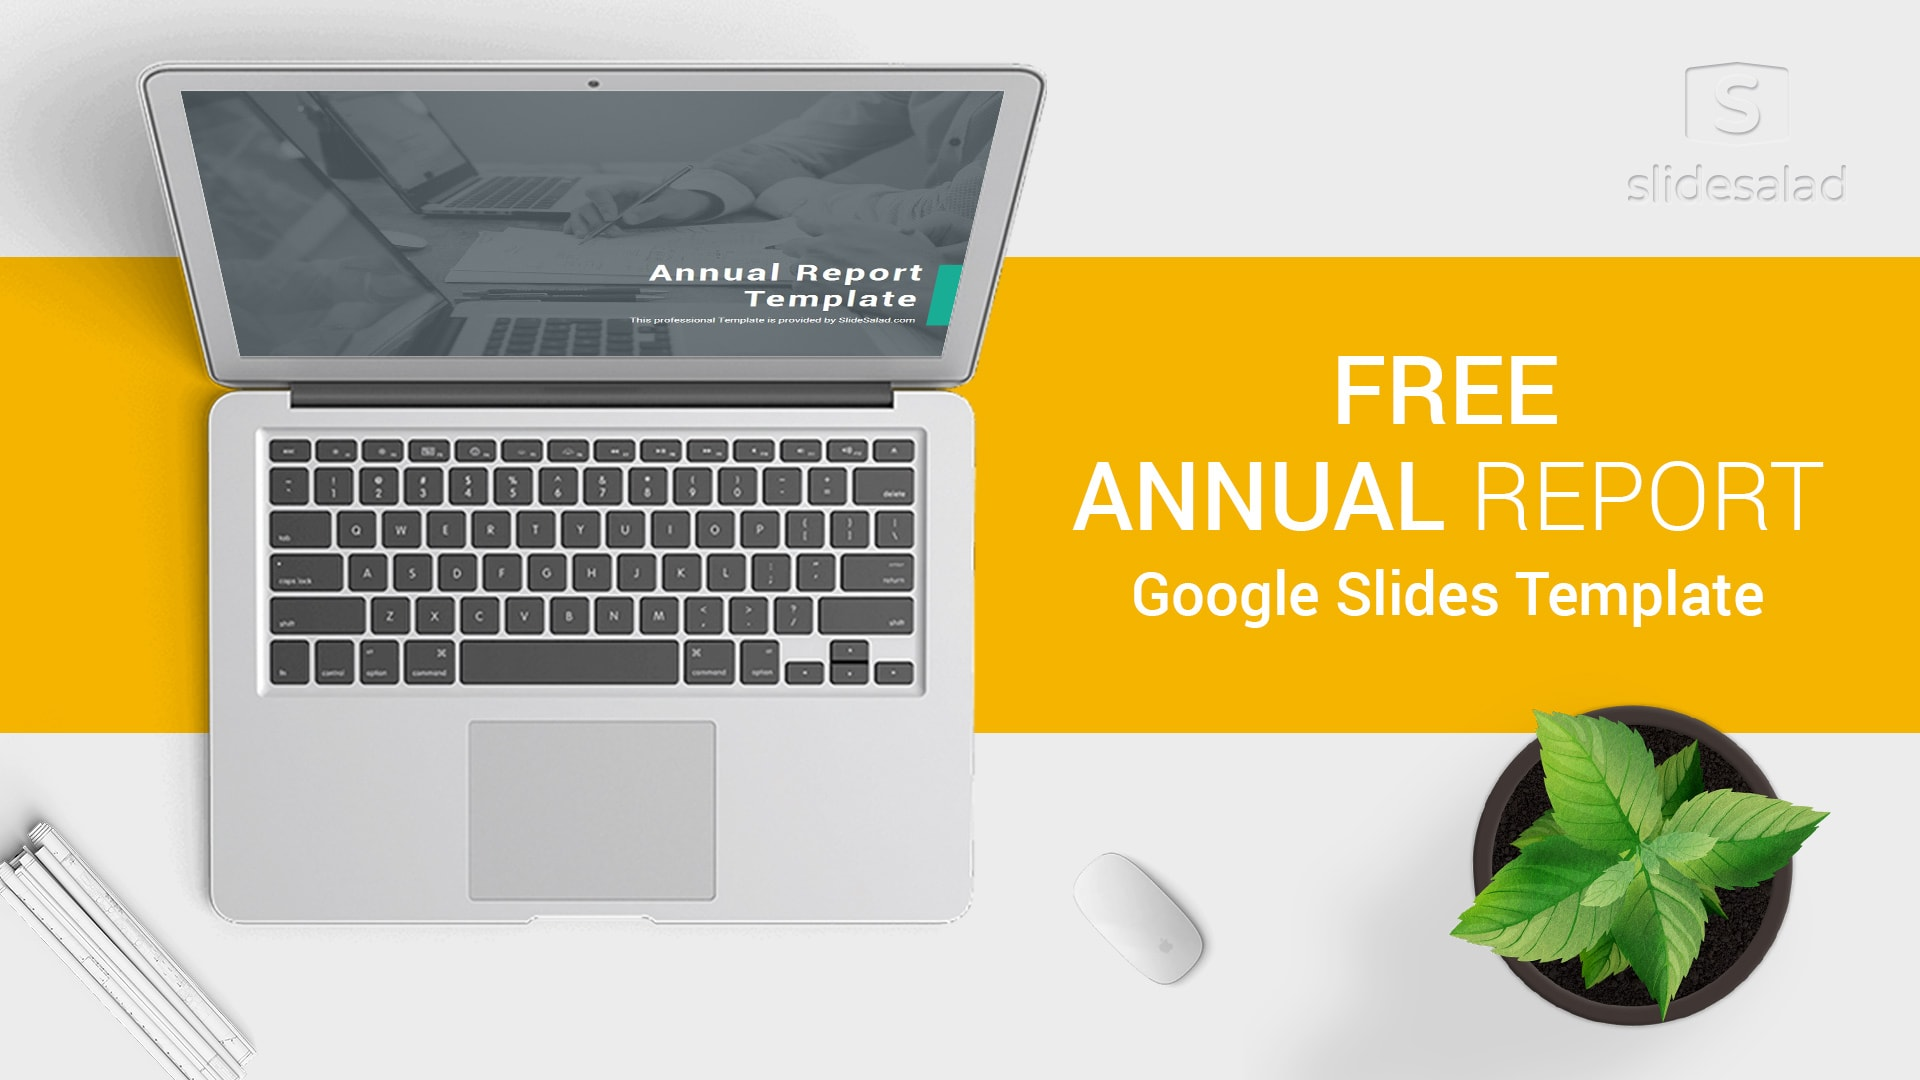 Free Download - Annual Report Google Slides Template for Presentations